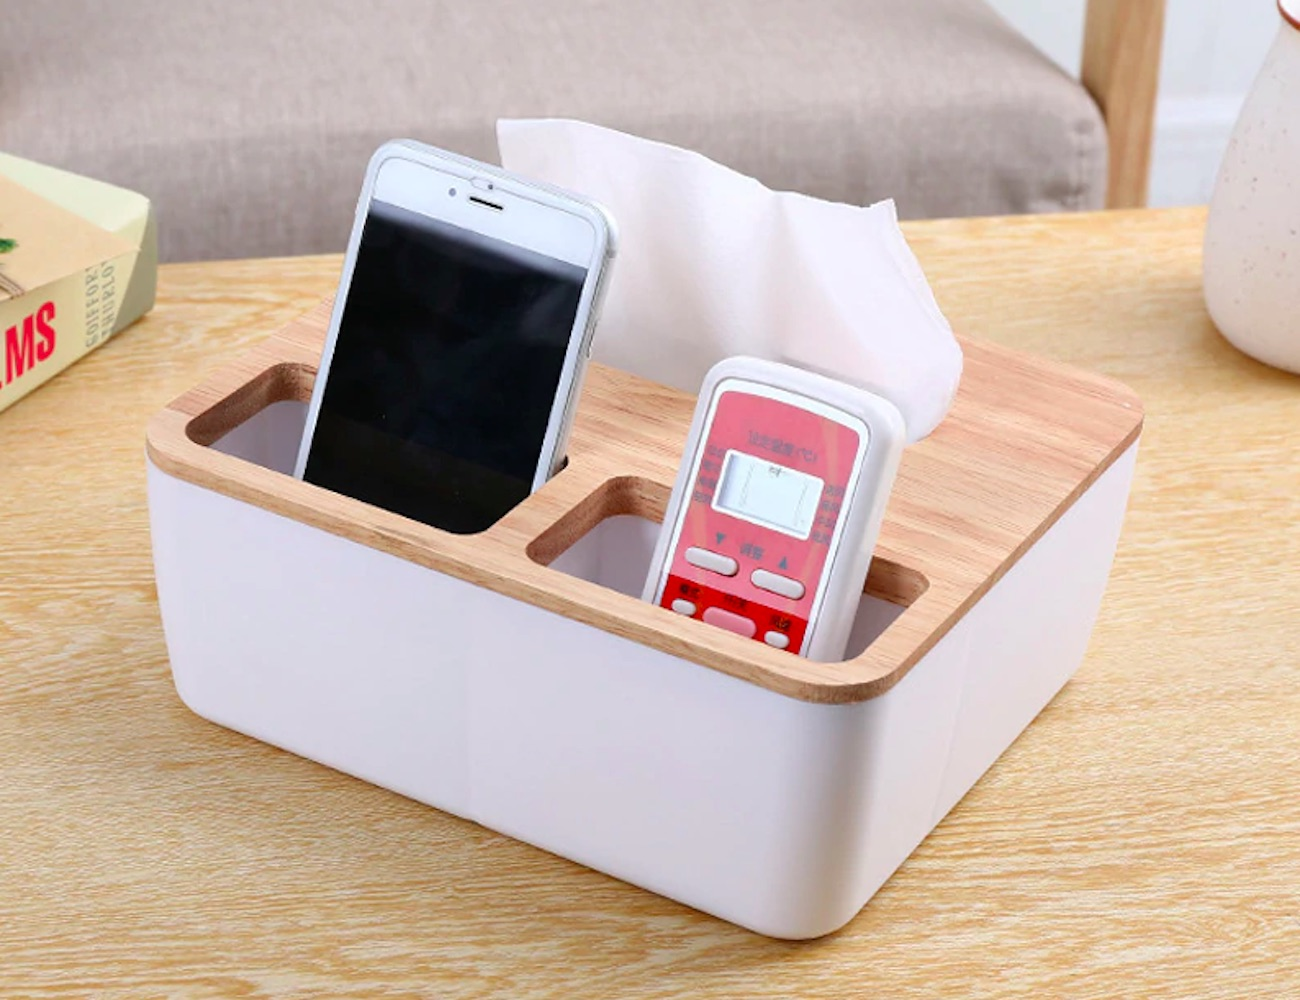 Wooden Tissue Box Organizer has a spot for everything you need